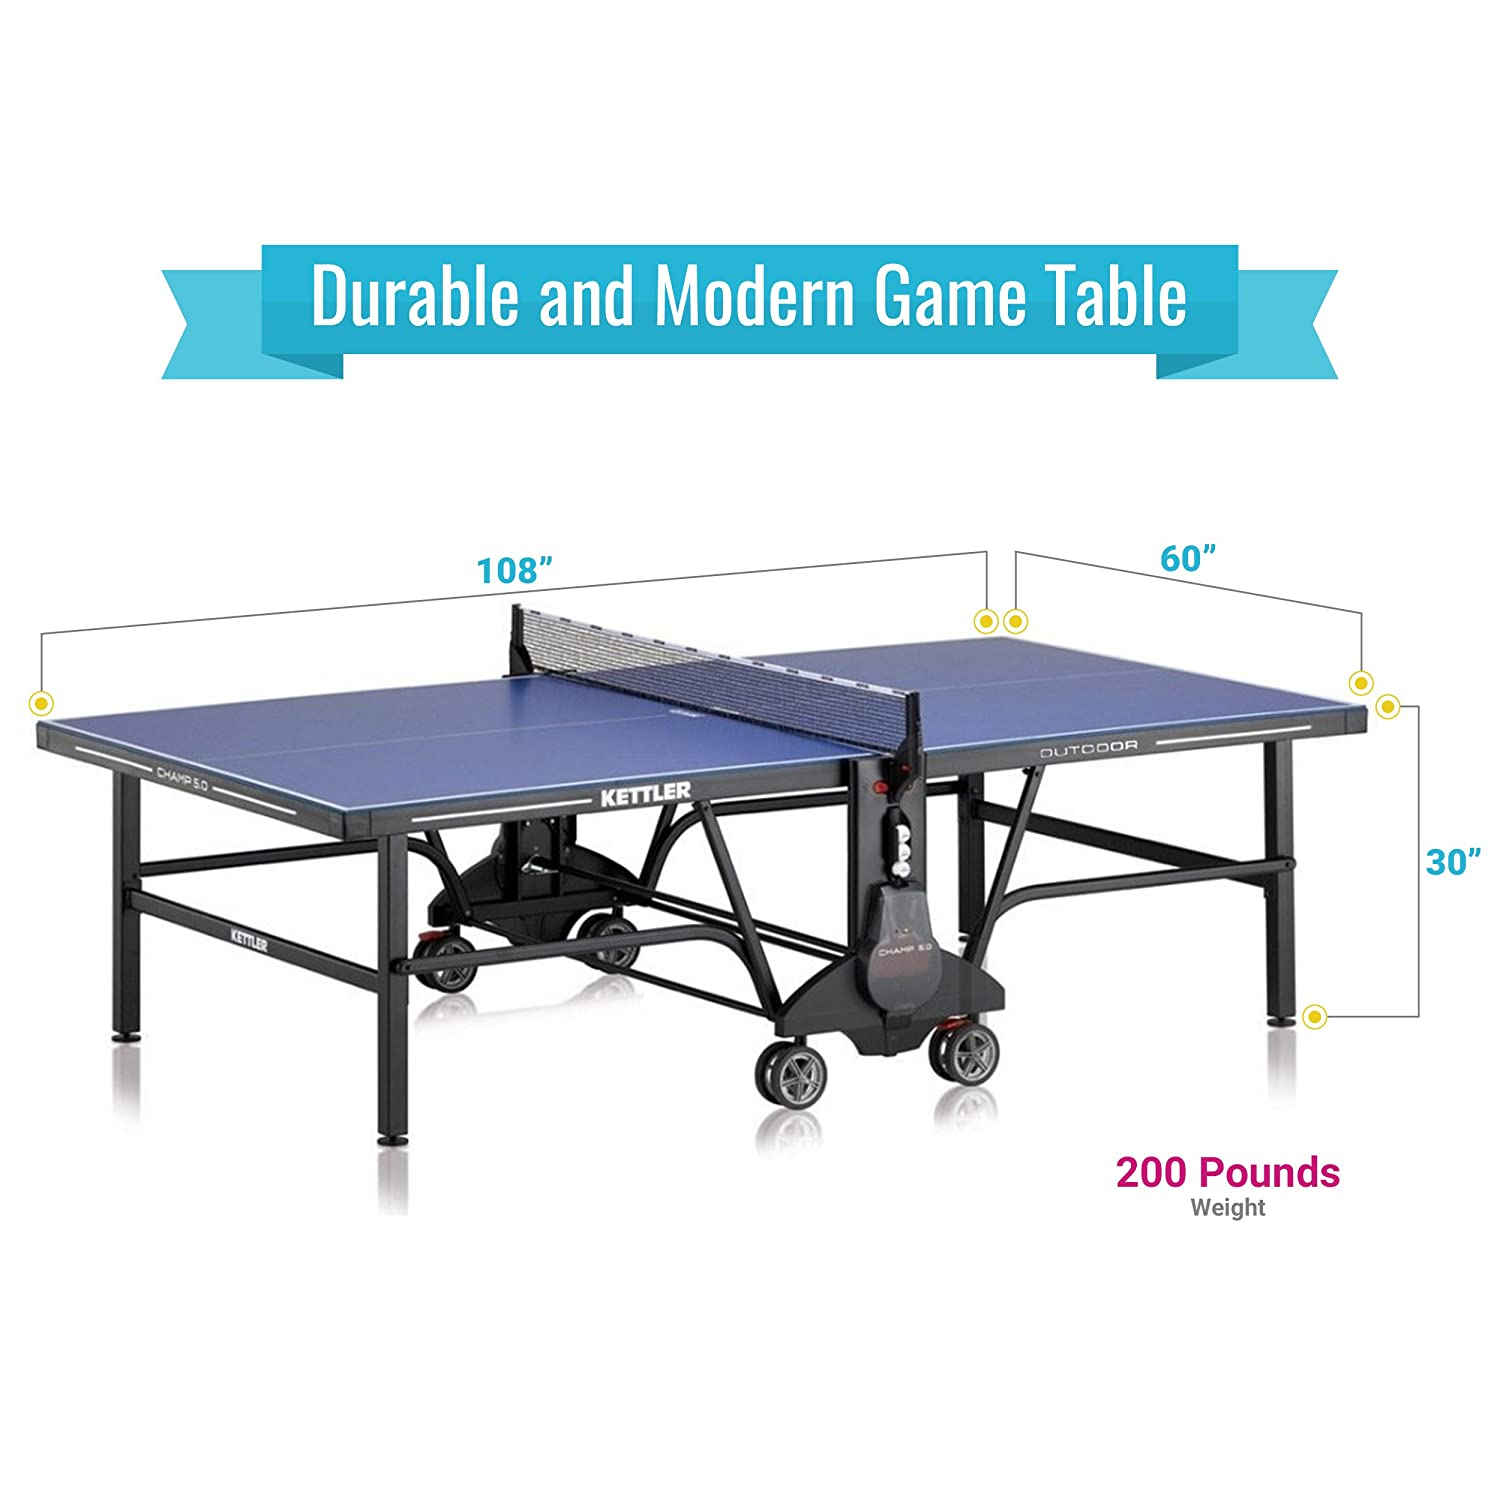 ba7efbeb9 Amazon.com   Kettler Champ 5.0 Outdoor Table Tennis Table with Outdoor  Accessory Bundle   Sports   Outdoors